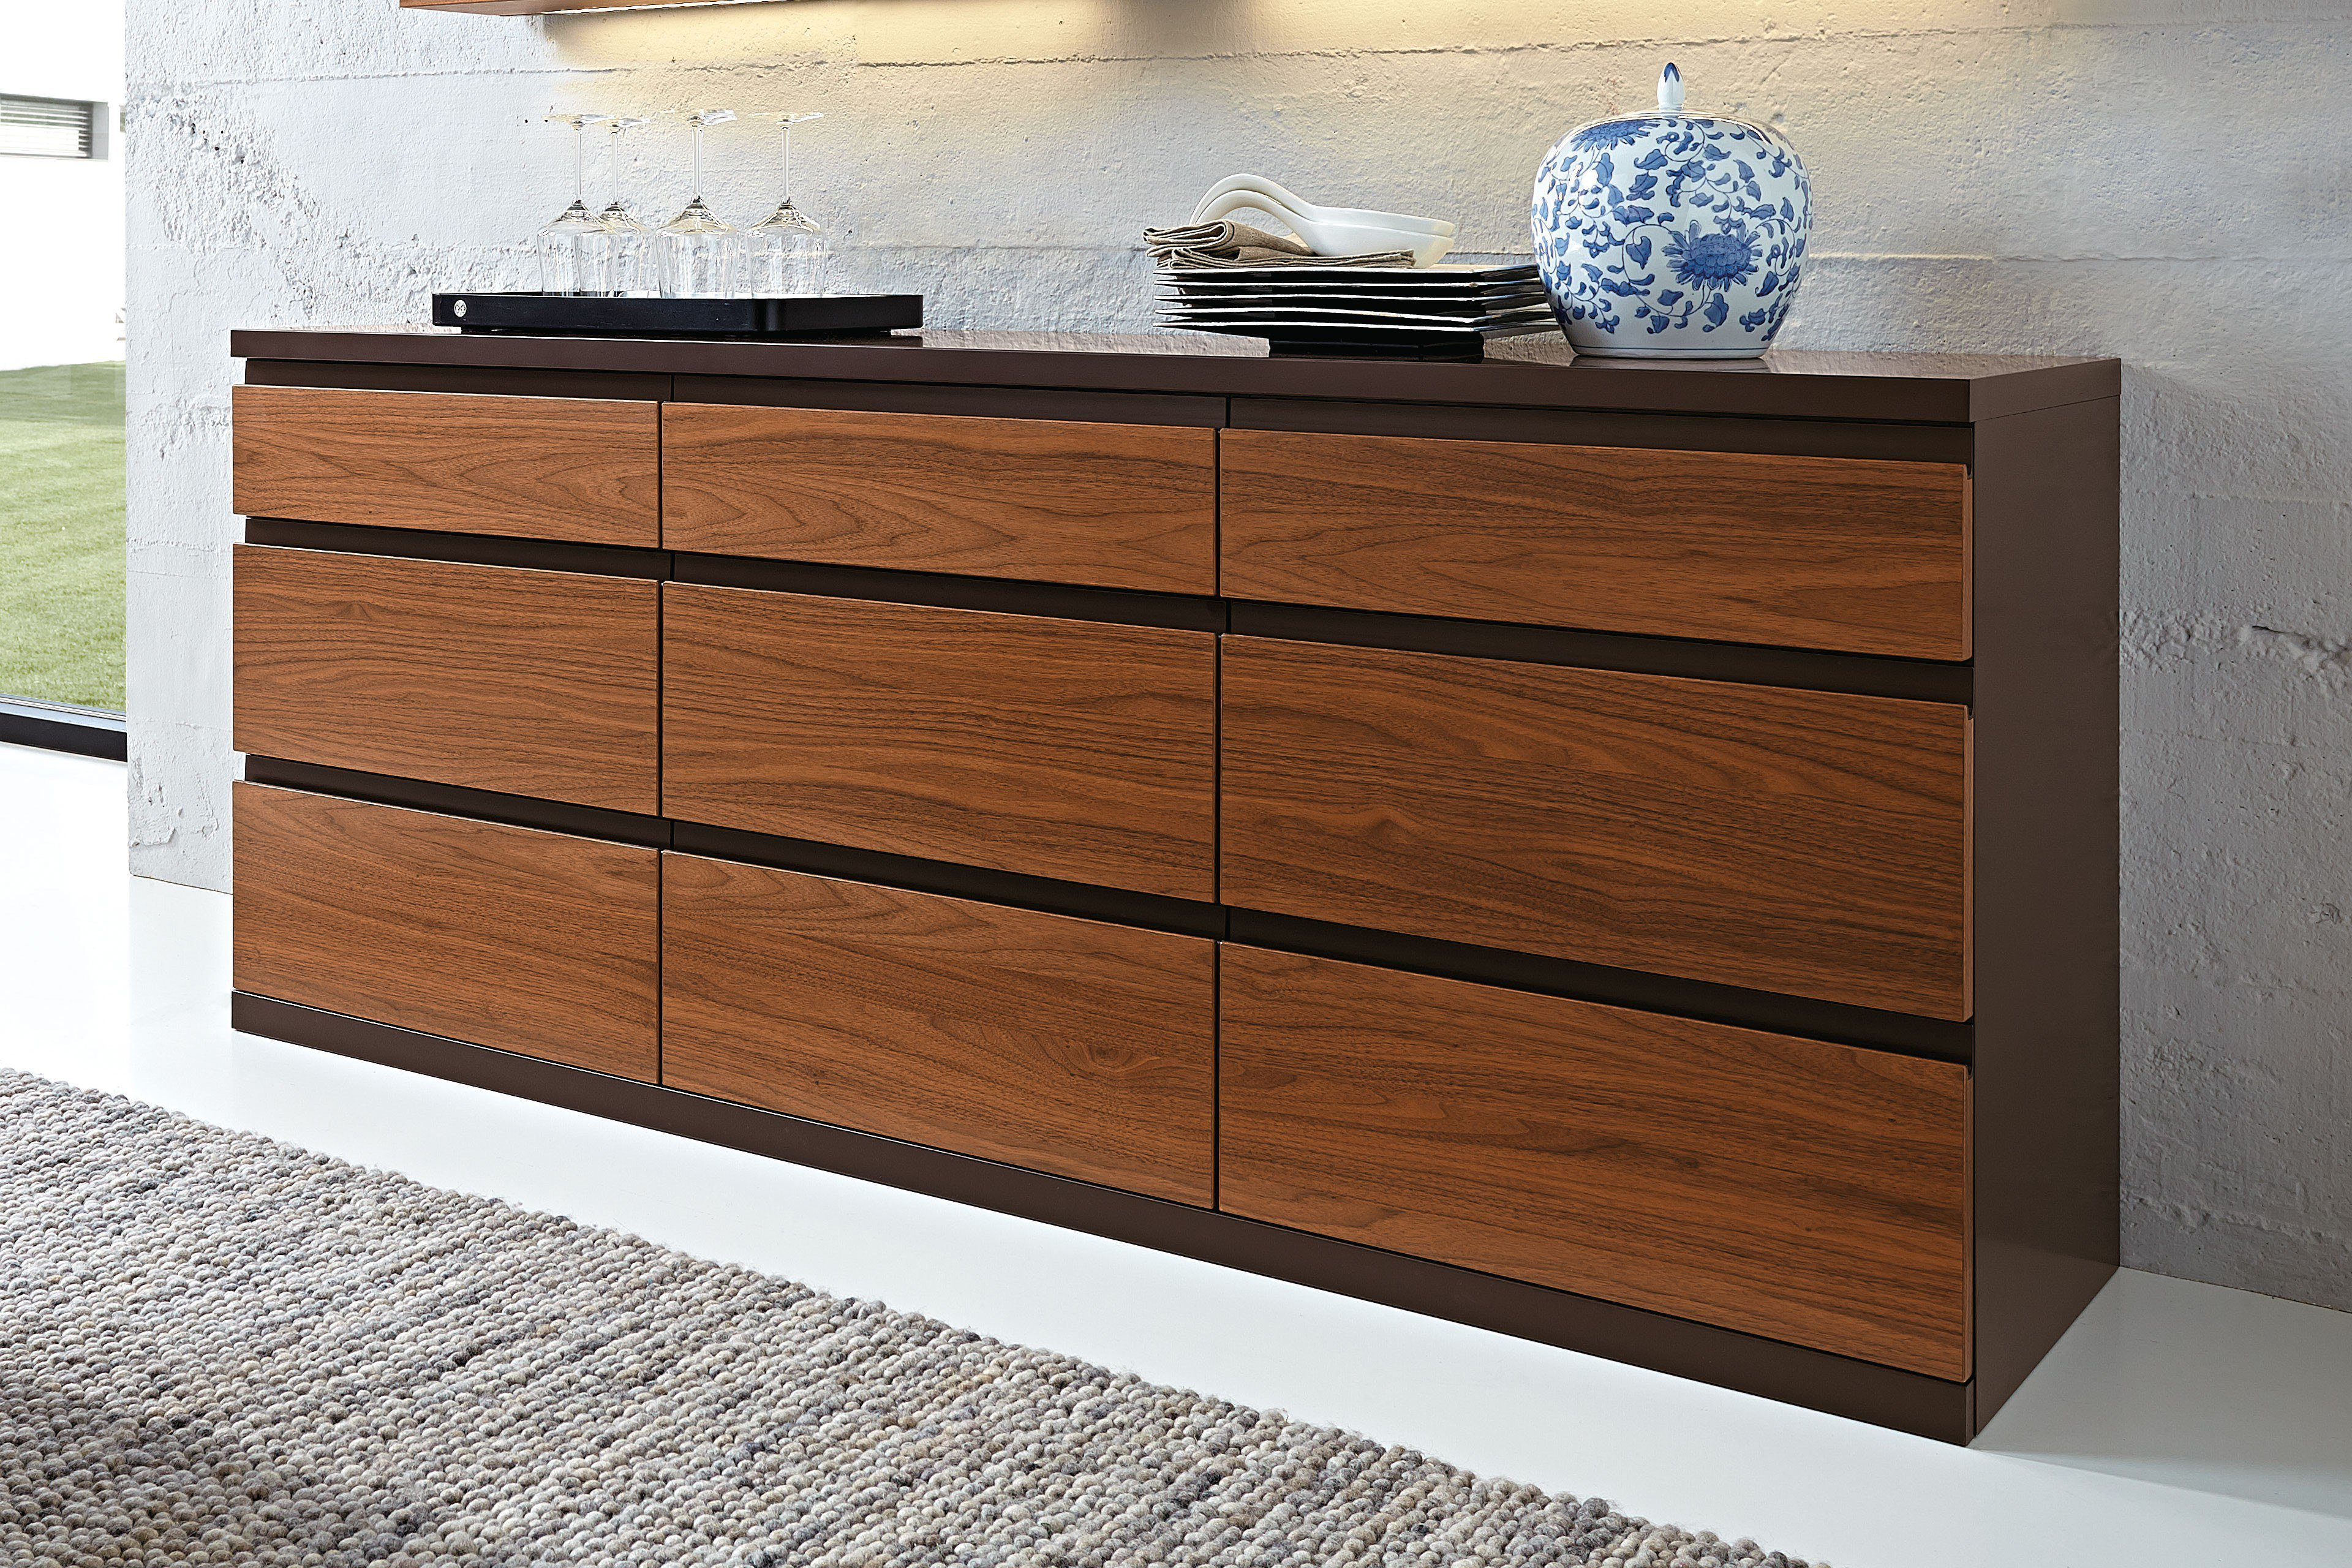 rietberger sideboard linaro nussbaum braun m bel letz ihr online shop. Black Bedroom Furniture Sets. Home Design Ideas